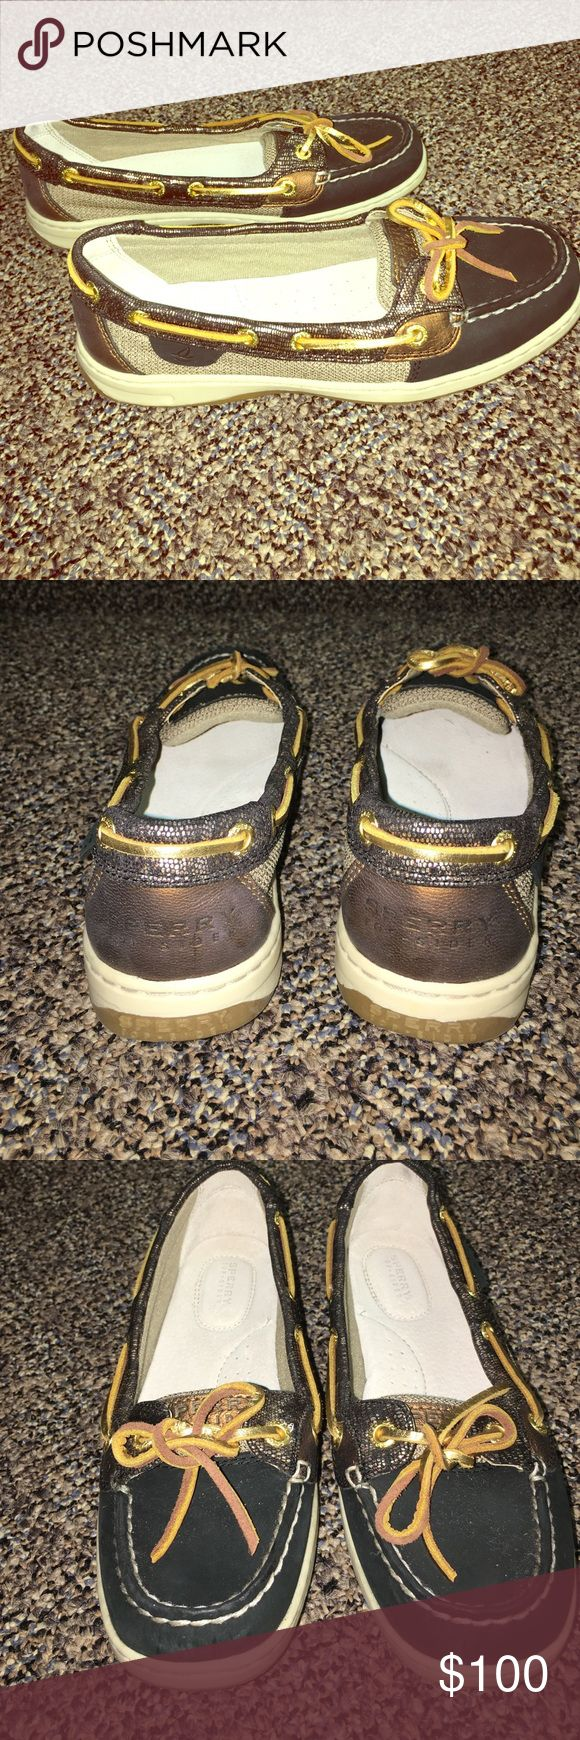 Black Sperrys with Gold Detailing Only worn 3-4 times. In Great Condition! Willing to take lower offers if reasonable. Sperry Top-Sider Shoes Flats & Loafers